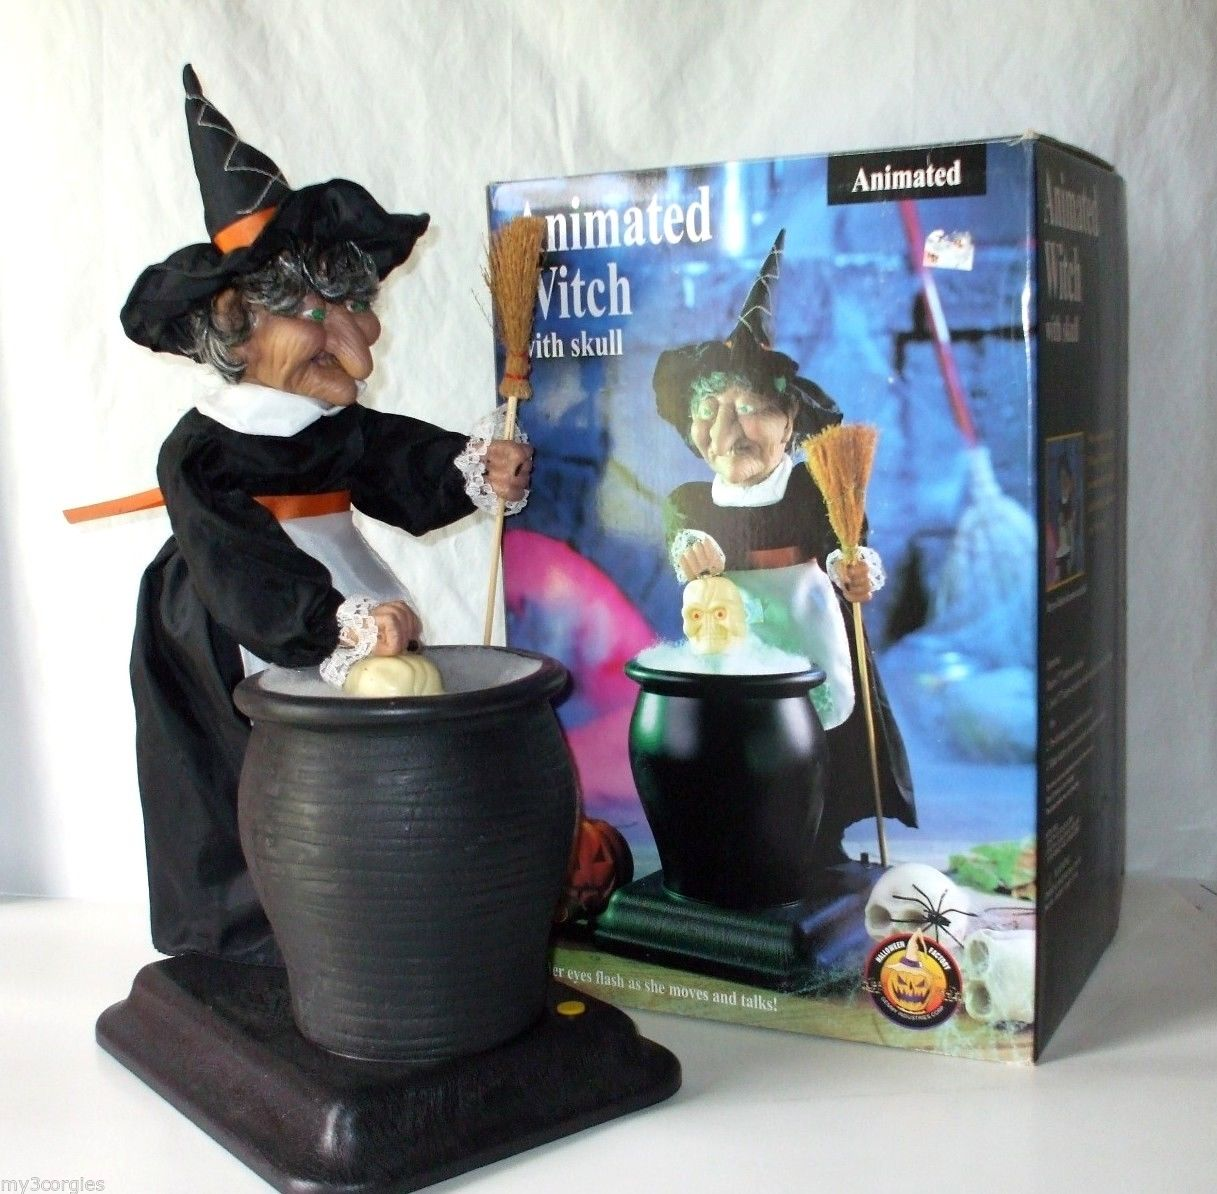 animated witch with skull in pot gemmy wiki fandom powered by wikia - Www Gemmy Com Halloween